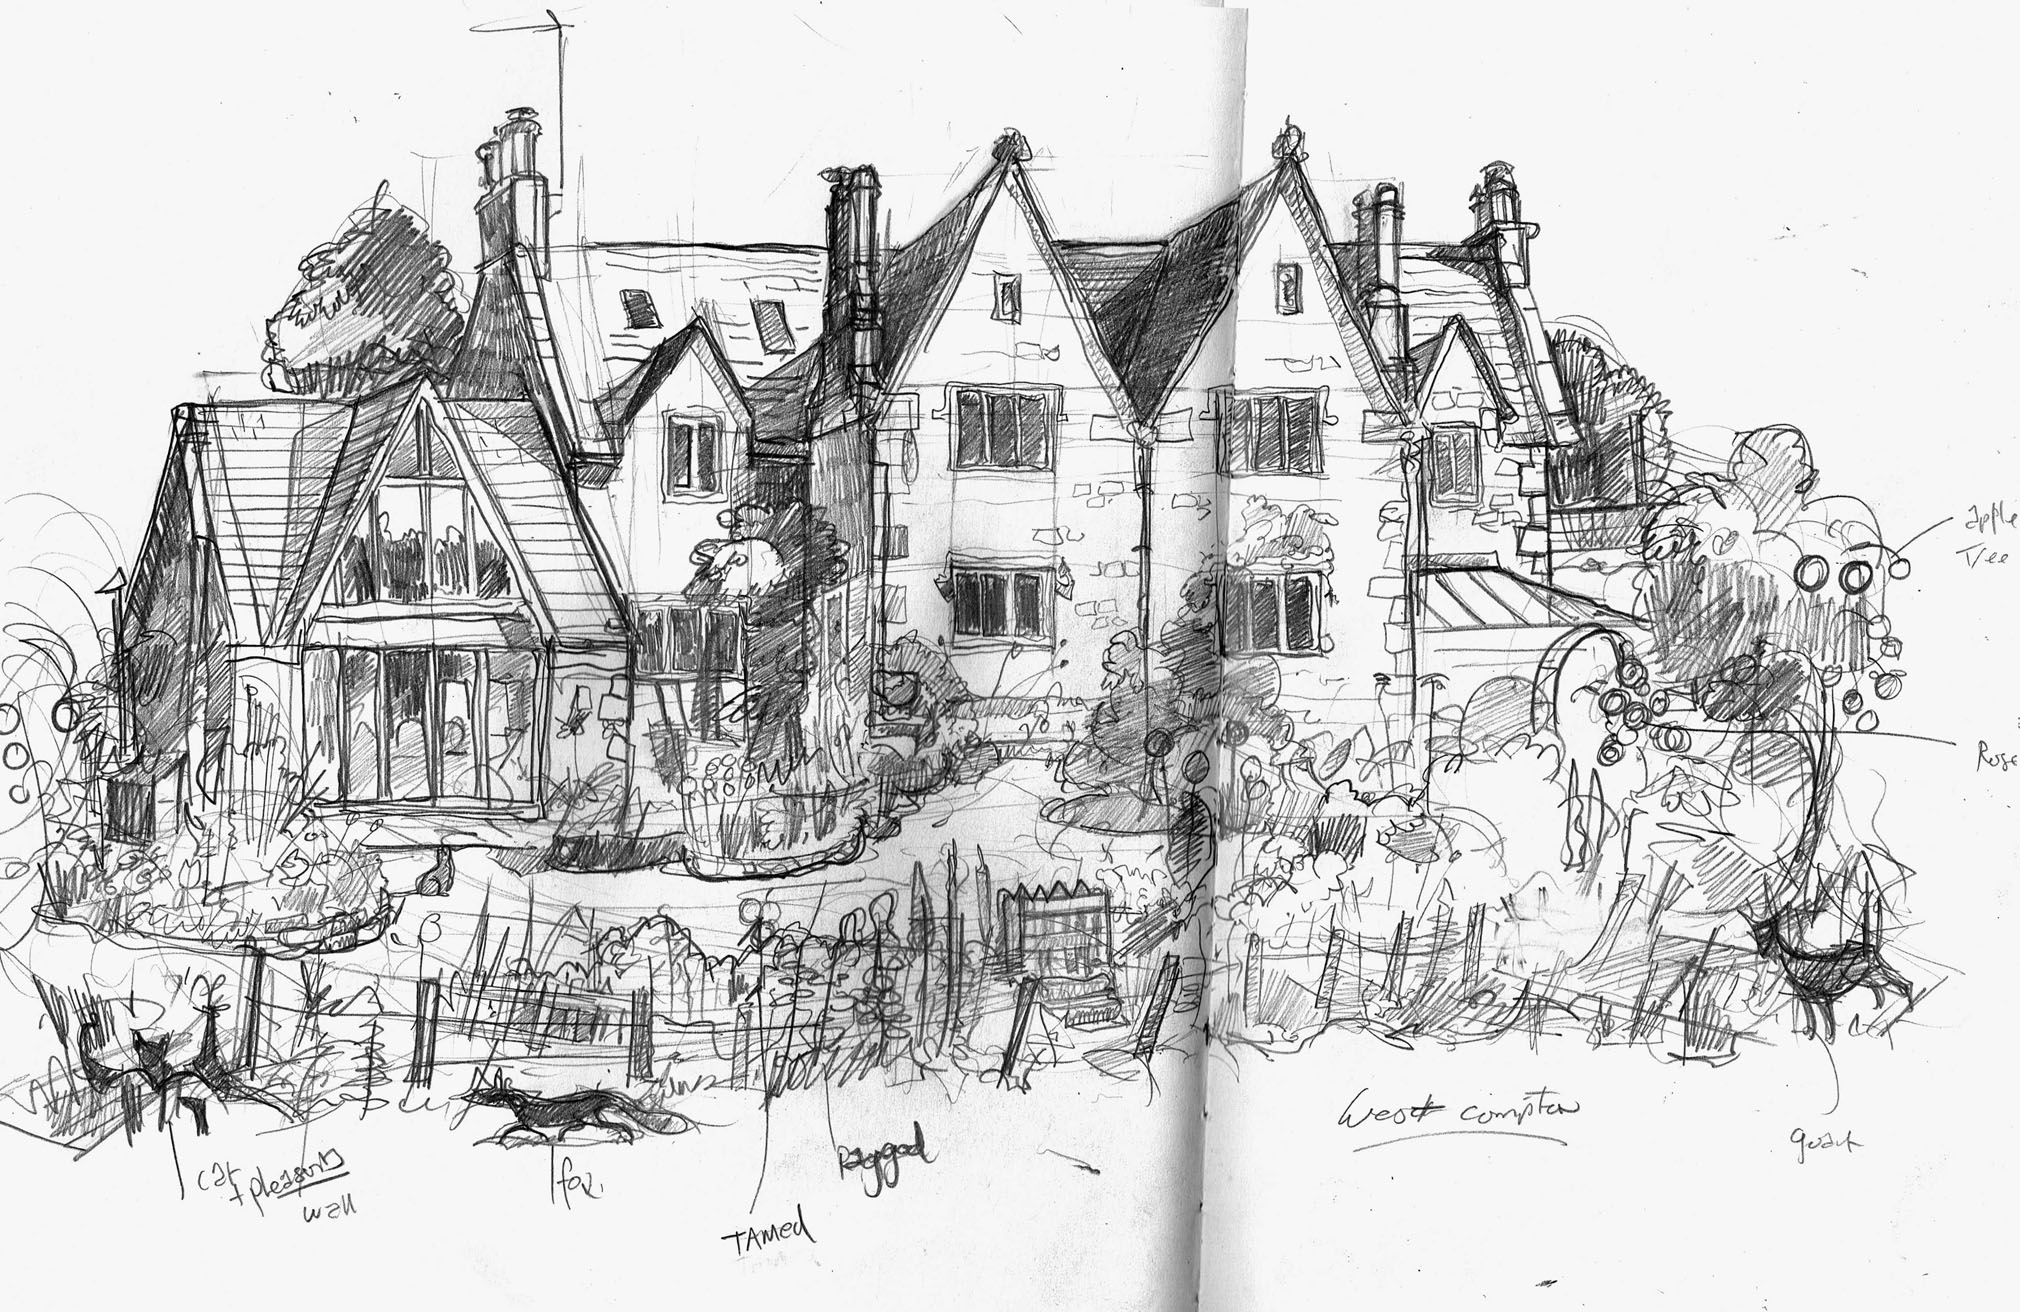 Intial Drawng of West Compton